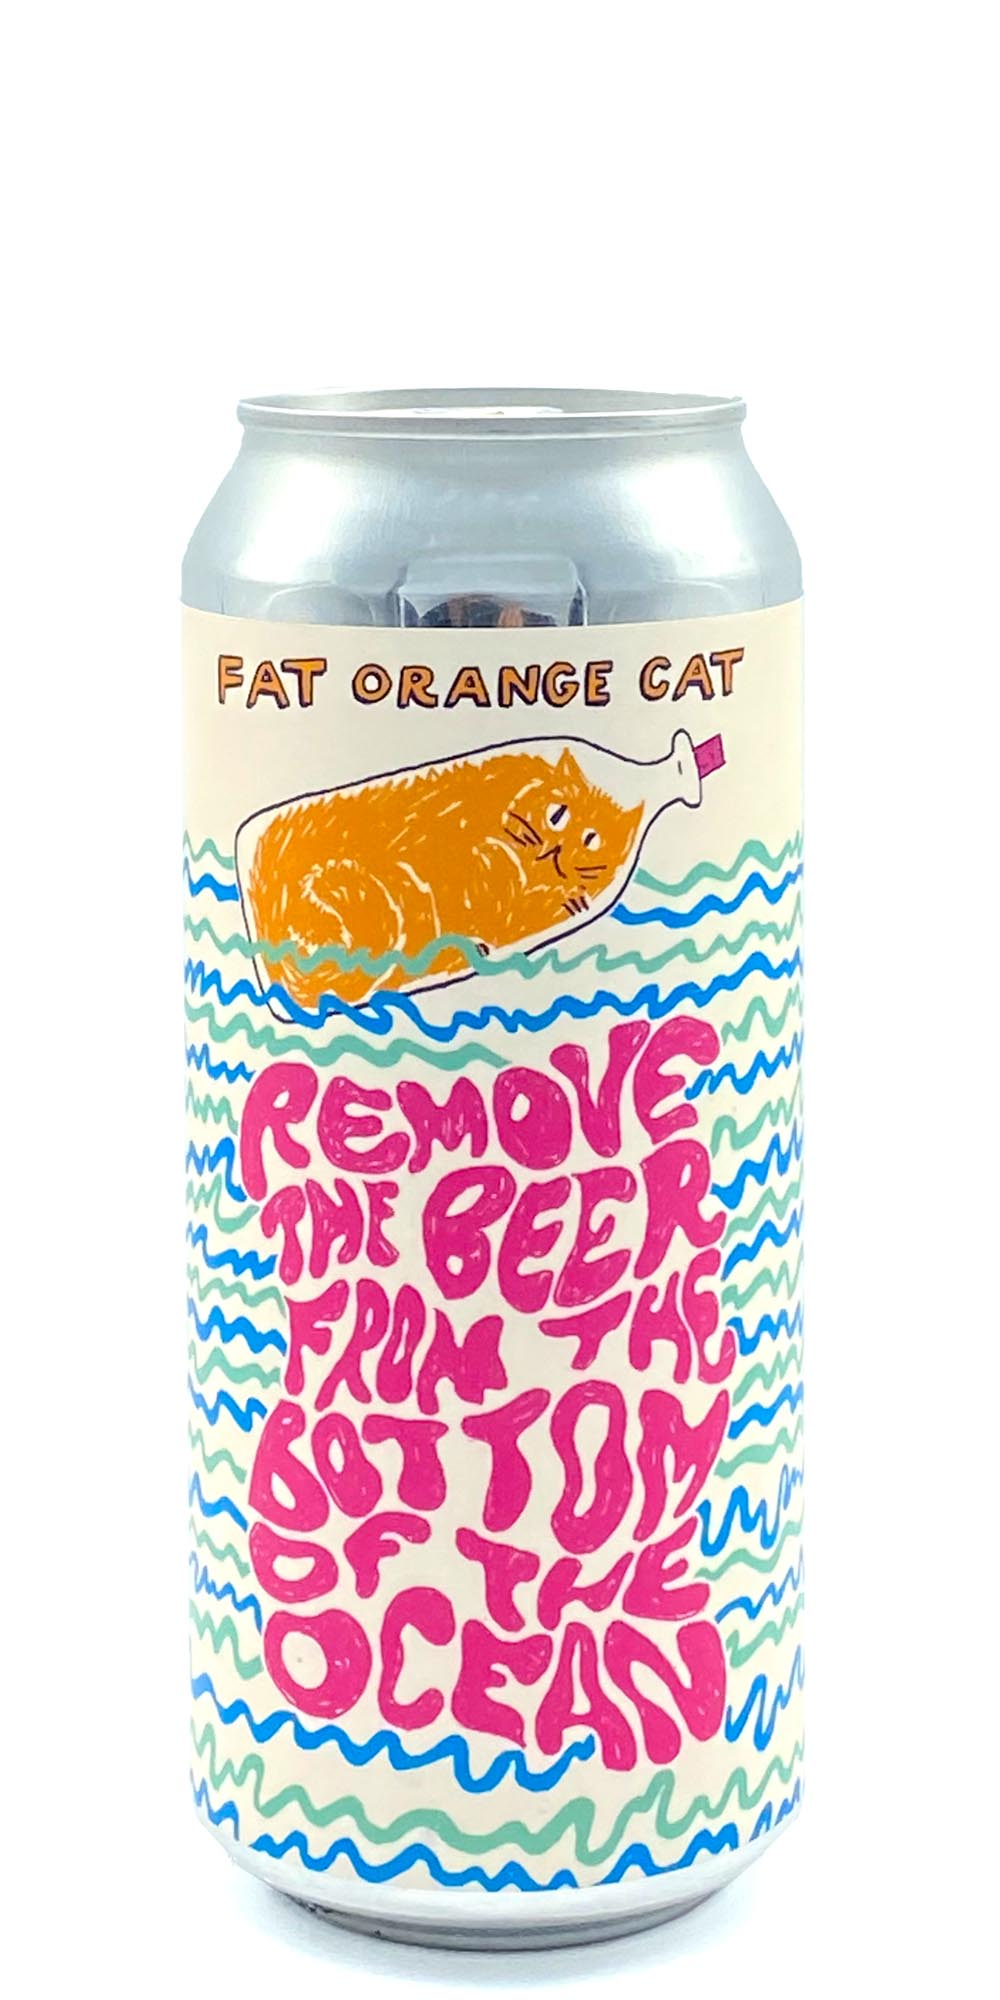 Fat Orange Cat - Remove the Beer from the Bottom of the Ocean - Drikbeer - Order Craft Beer Online